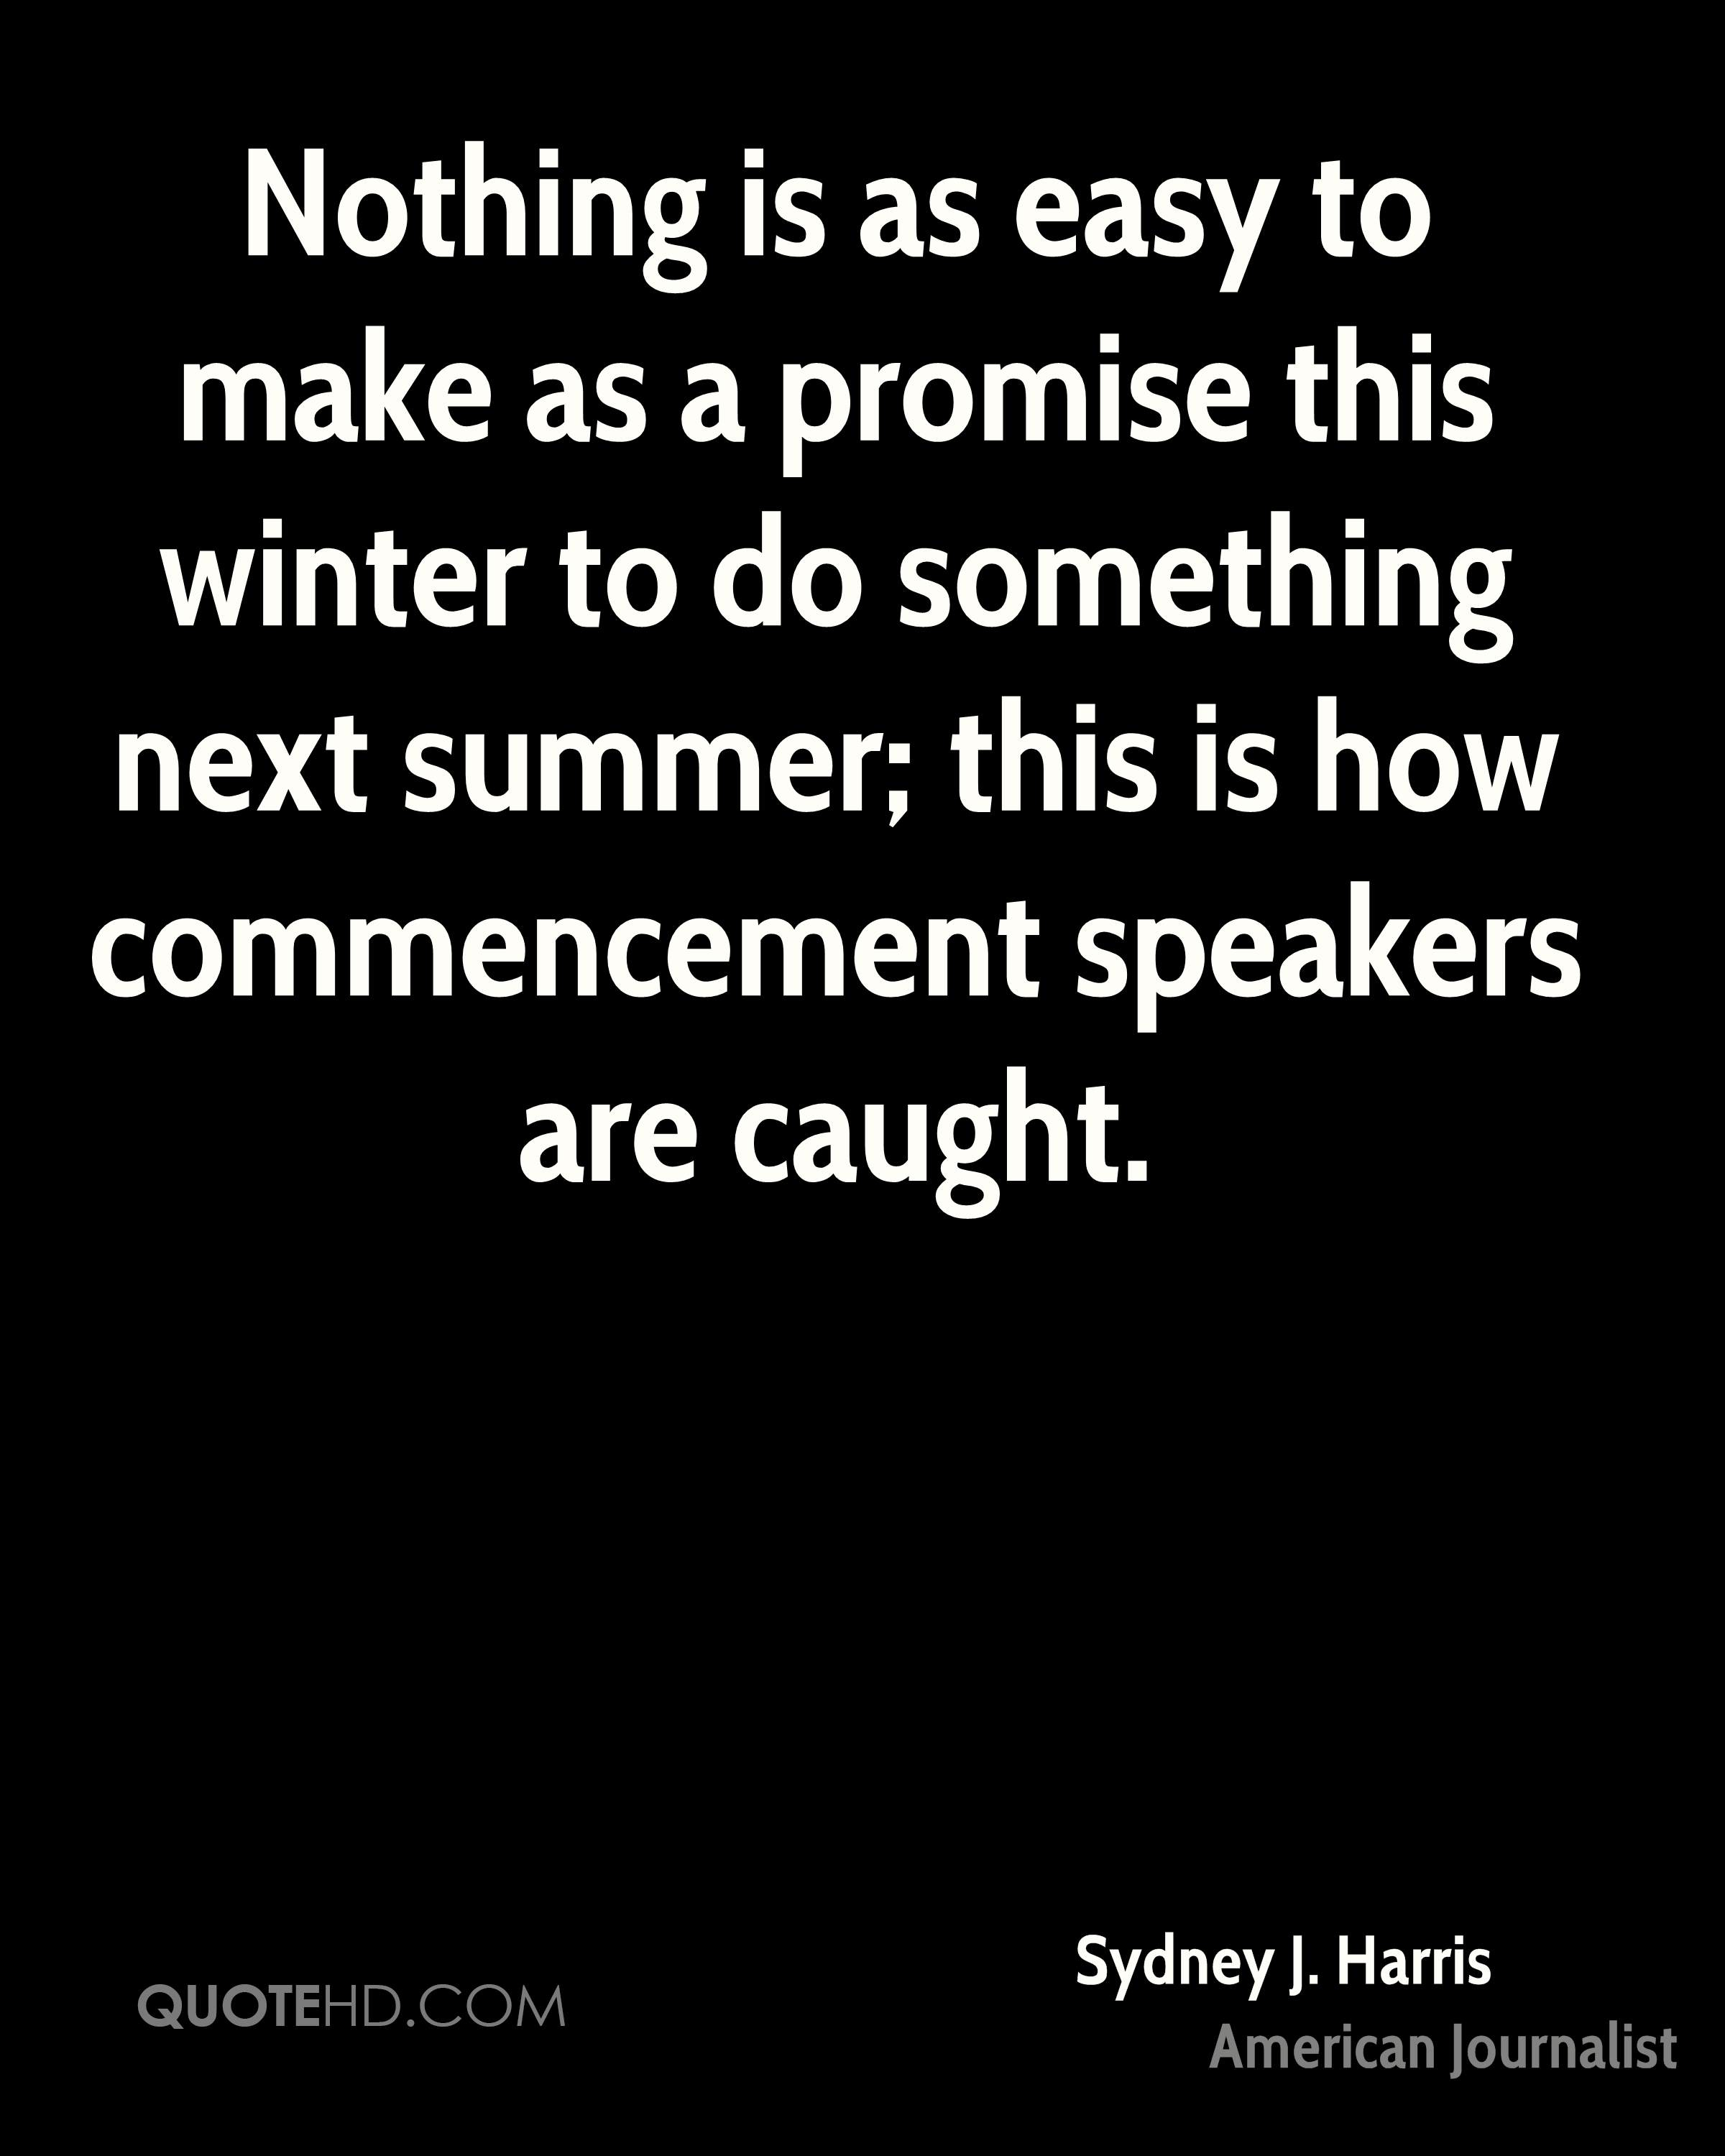 Nothing is as easy to make as a promise this winter to do something next summer; this is how commencement speakers are caught.